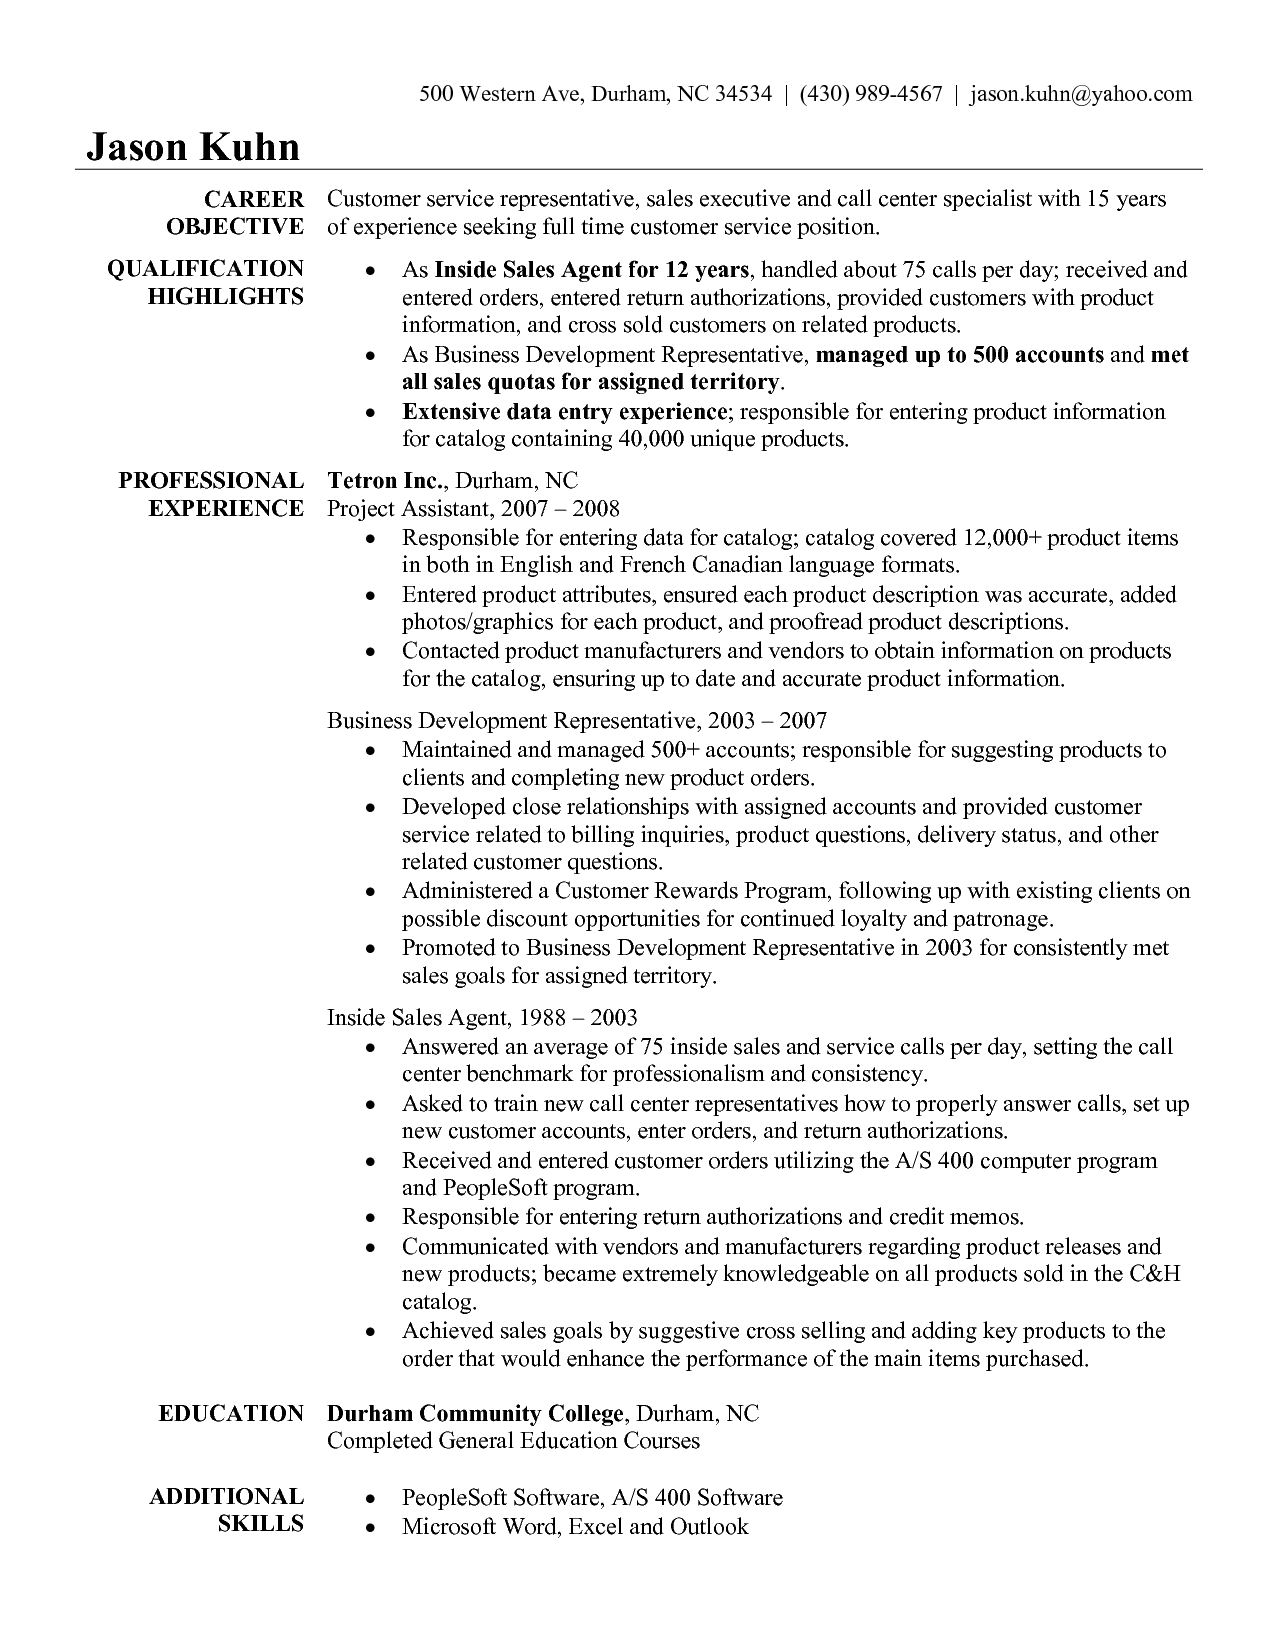 Insurance Claims Representative Resume Sample http//www